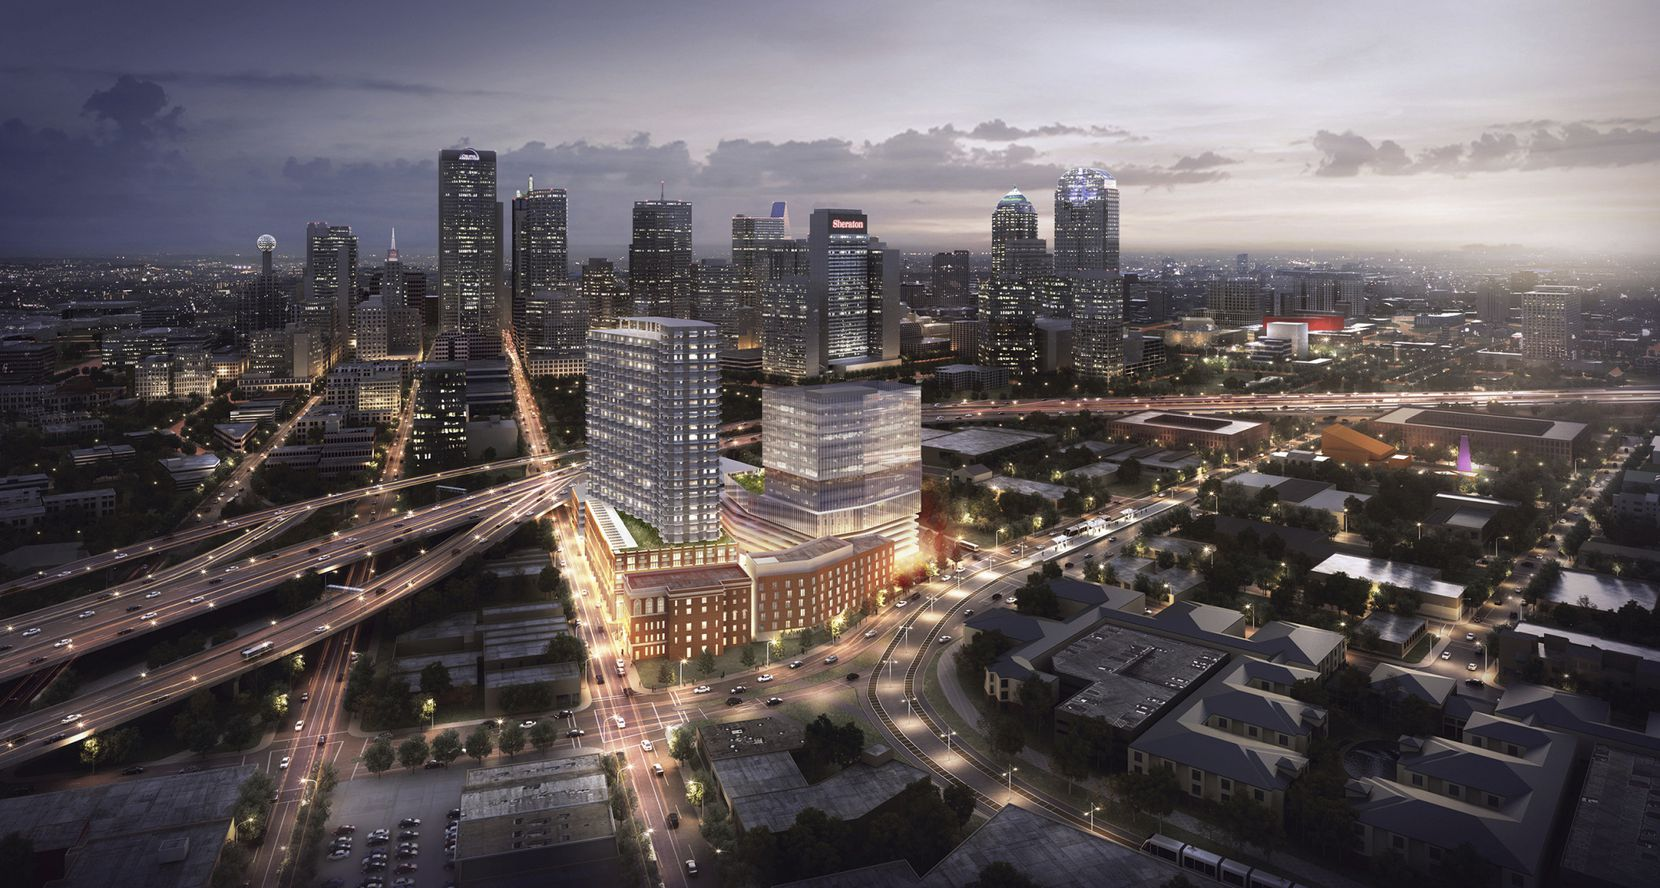 The 8-acre Epic project includes the new Kimpton Hotel, an office tower and apartment high-rise